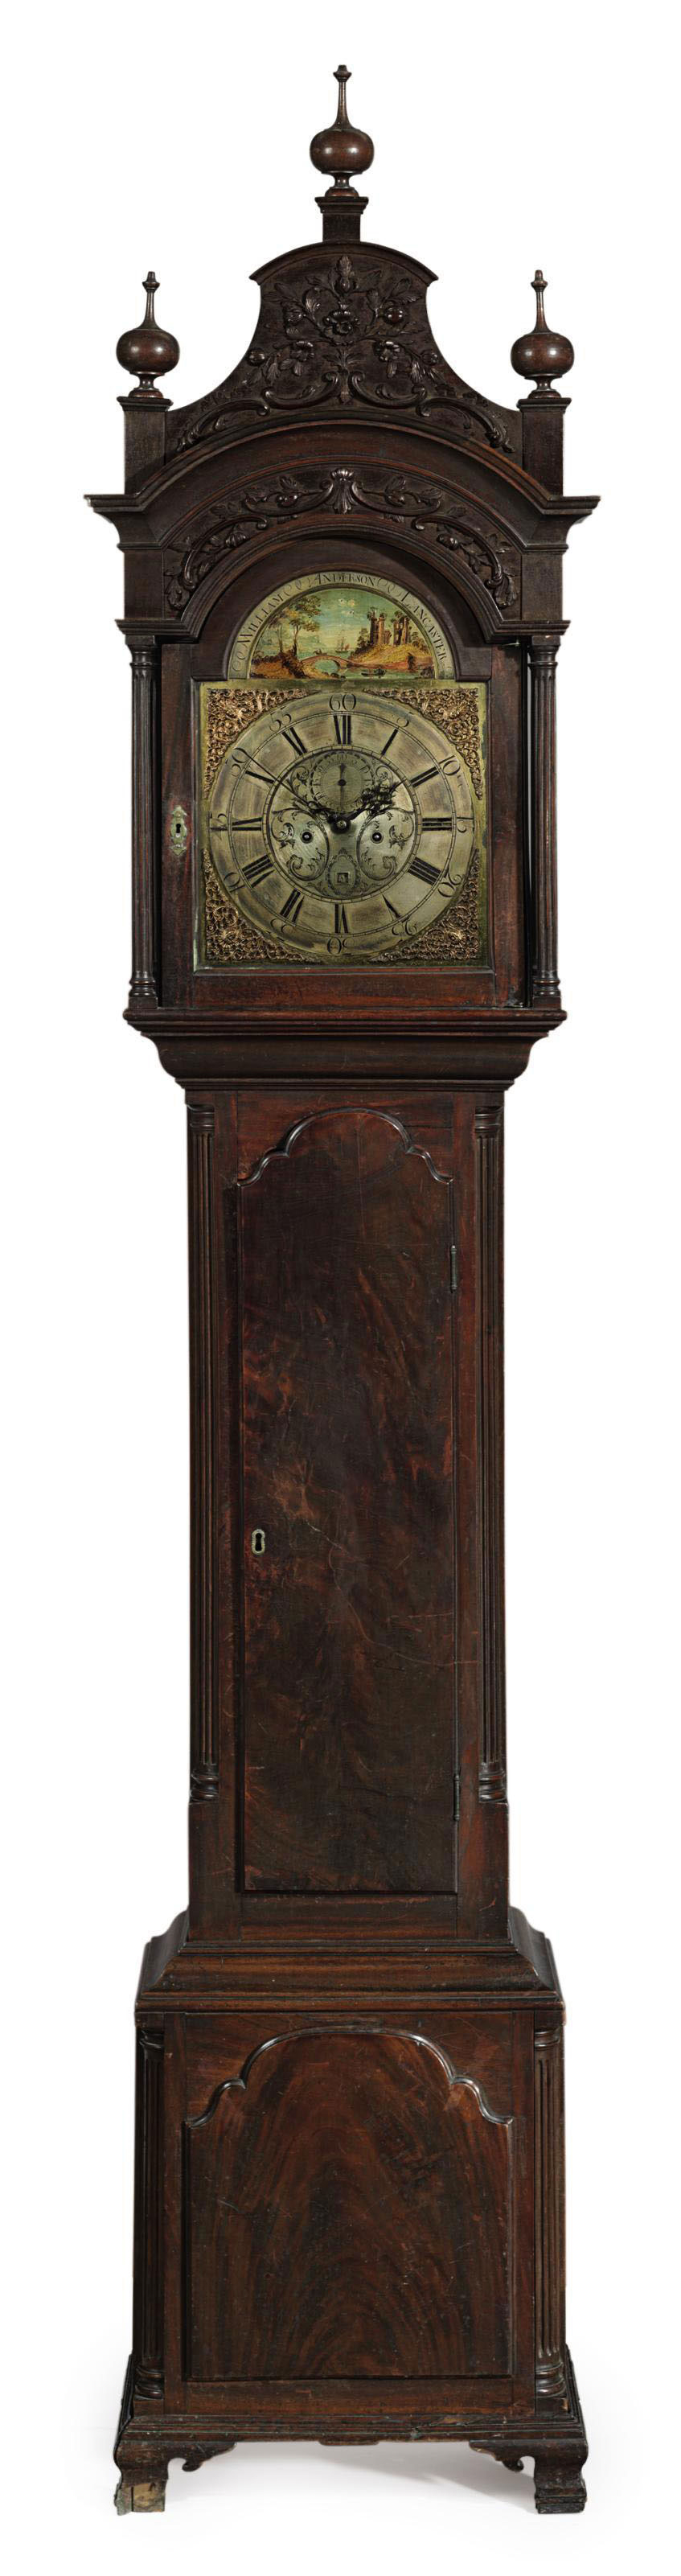 A CHIPPENDALE CARVED MAHOGANY TALL-CASE CLOCK